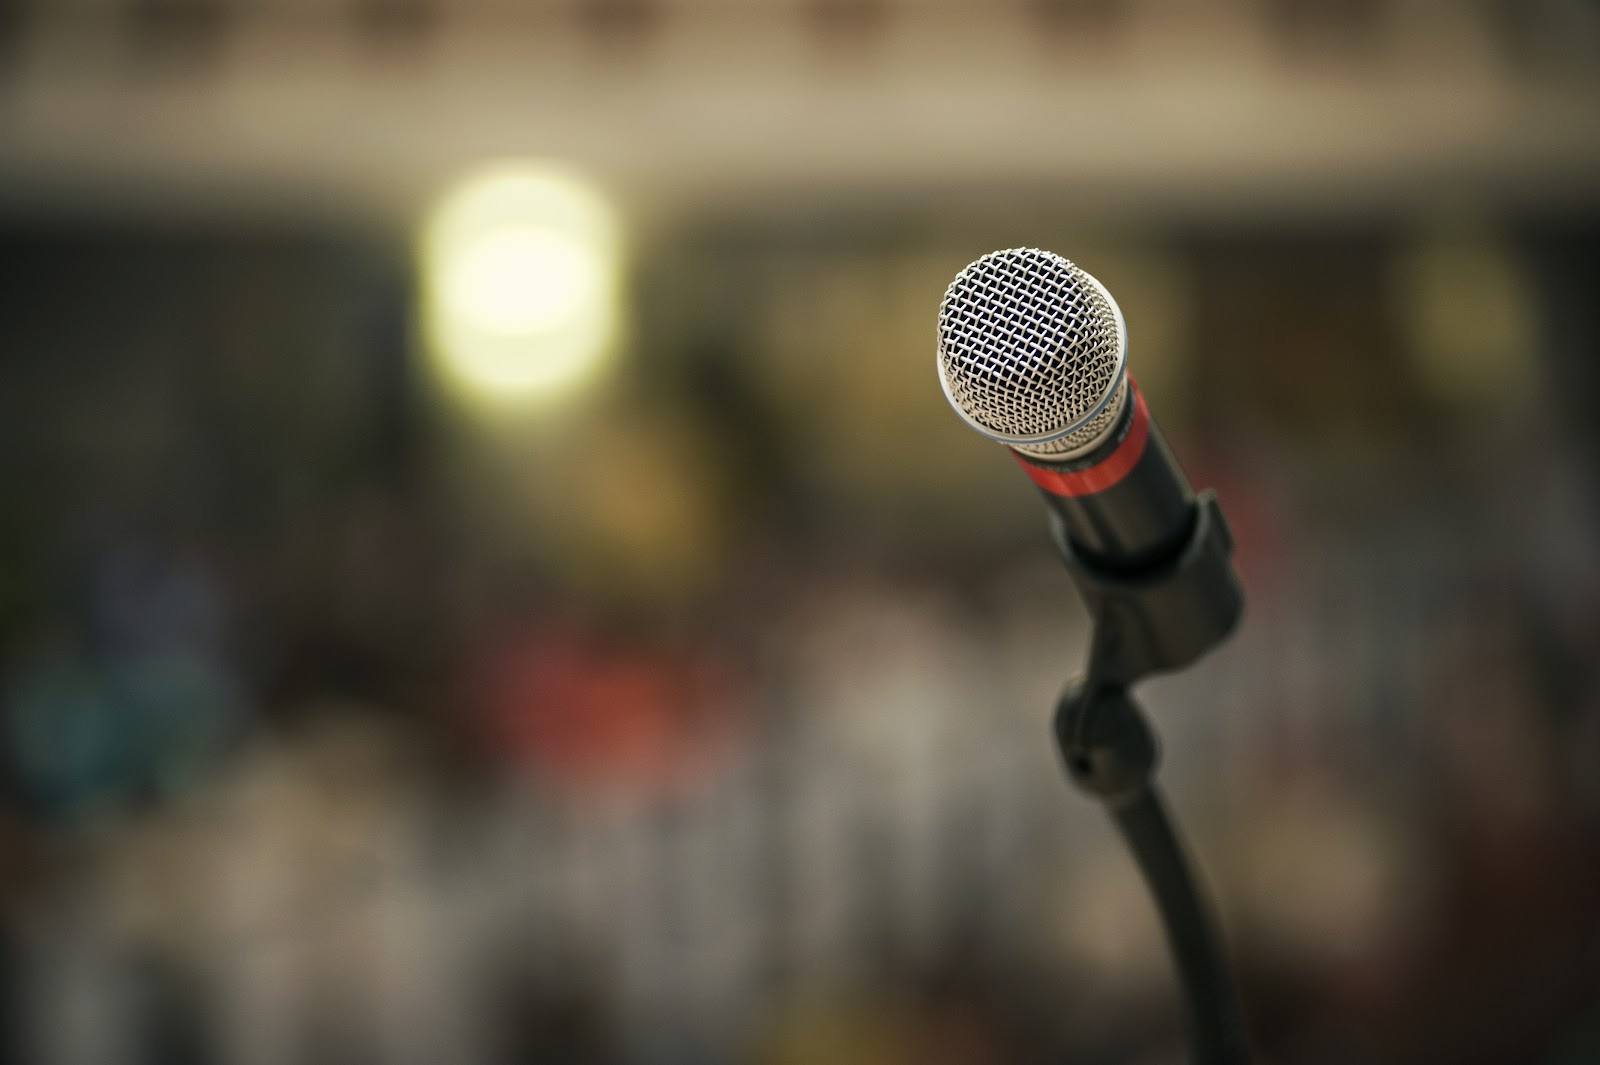 Microphone_on_stand_in_front_of_blurry_background.jpg